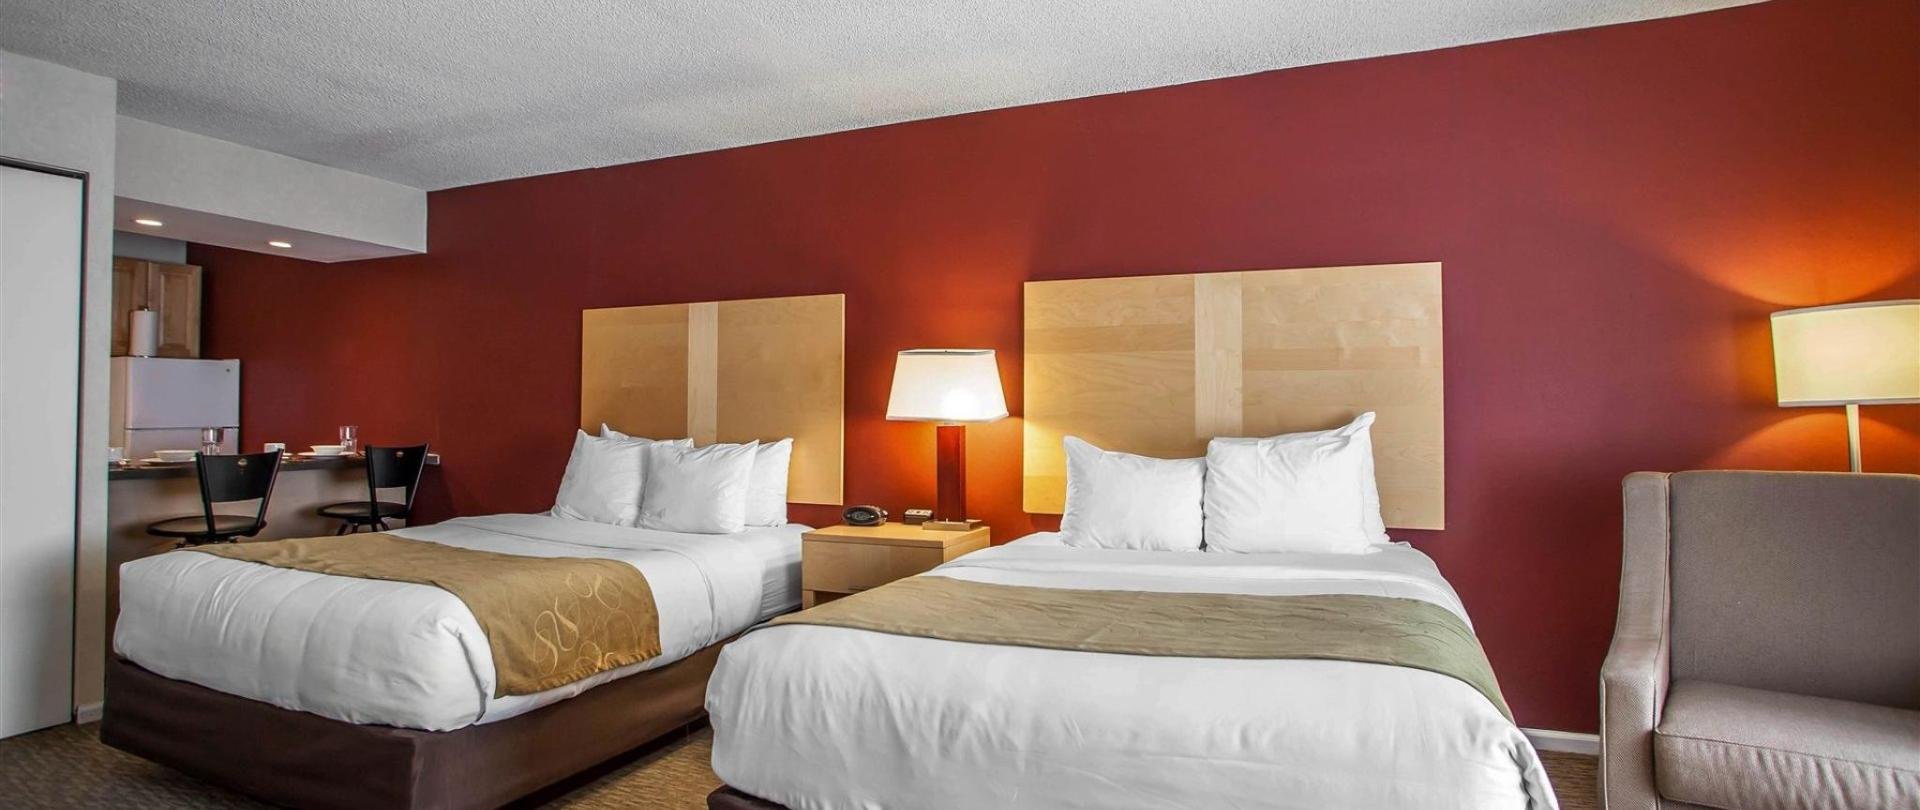 Downtown chicago hotel michigan avenue hotel comfort for Downtown chicago lodging